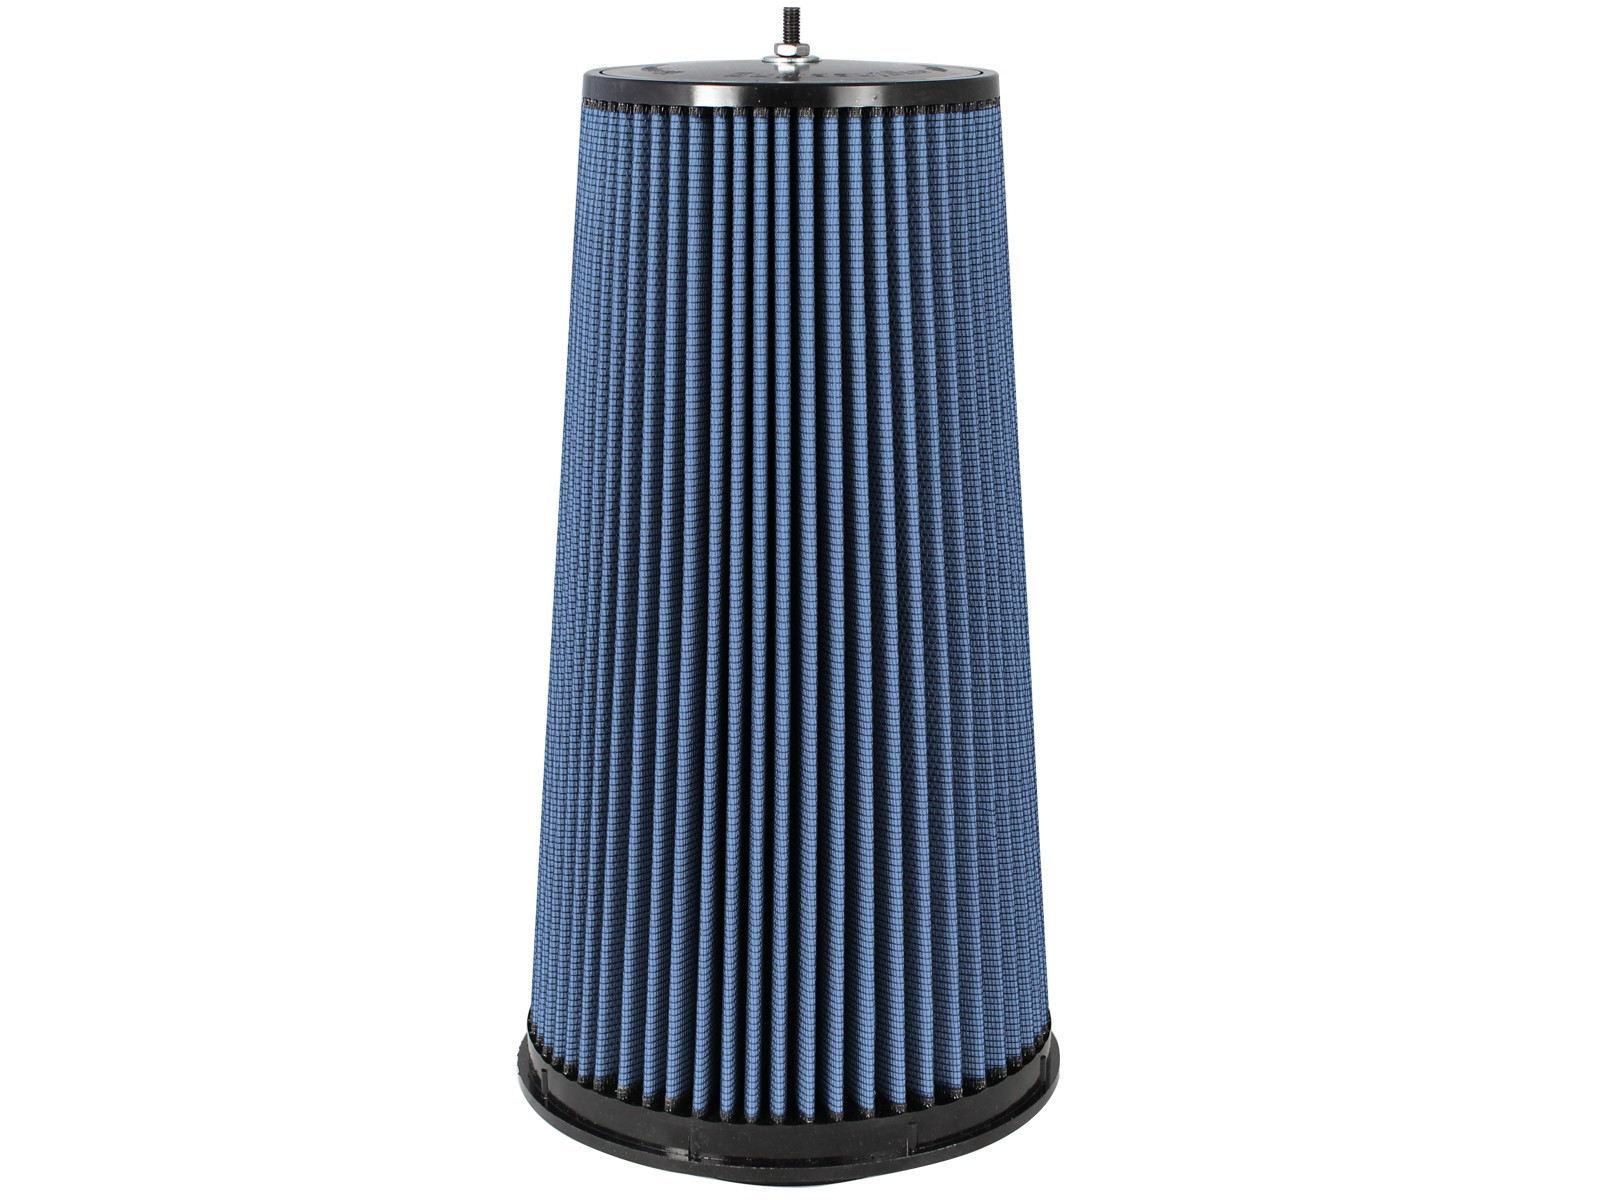 aFe POWER 70-50002 ProHDuty Pro 5R Air Filter for 70-50102, 70-50105